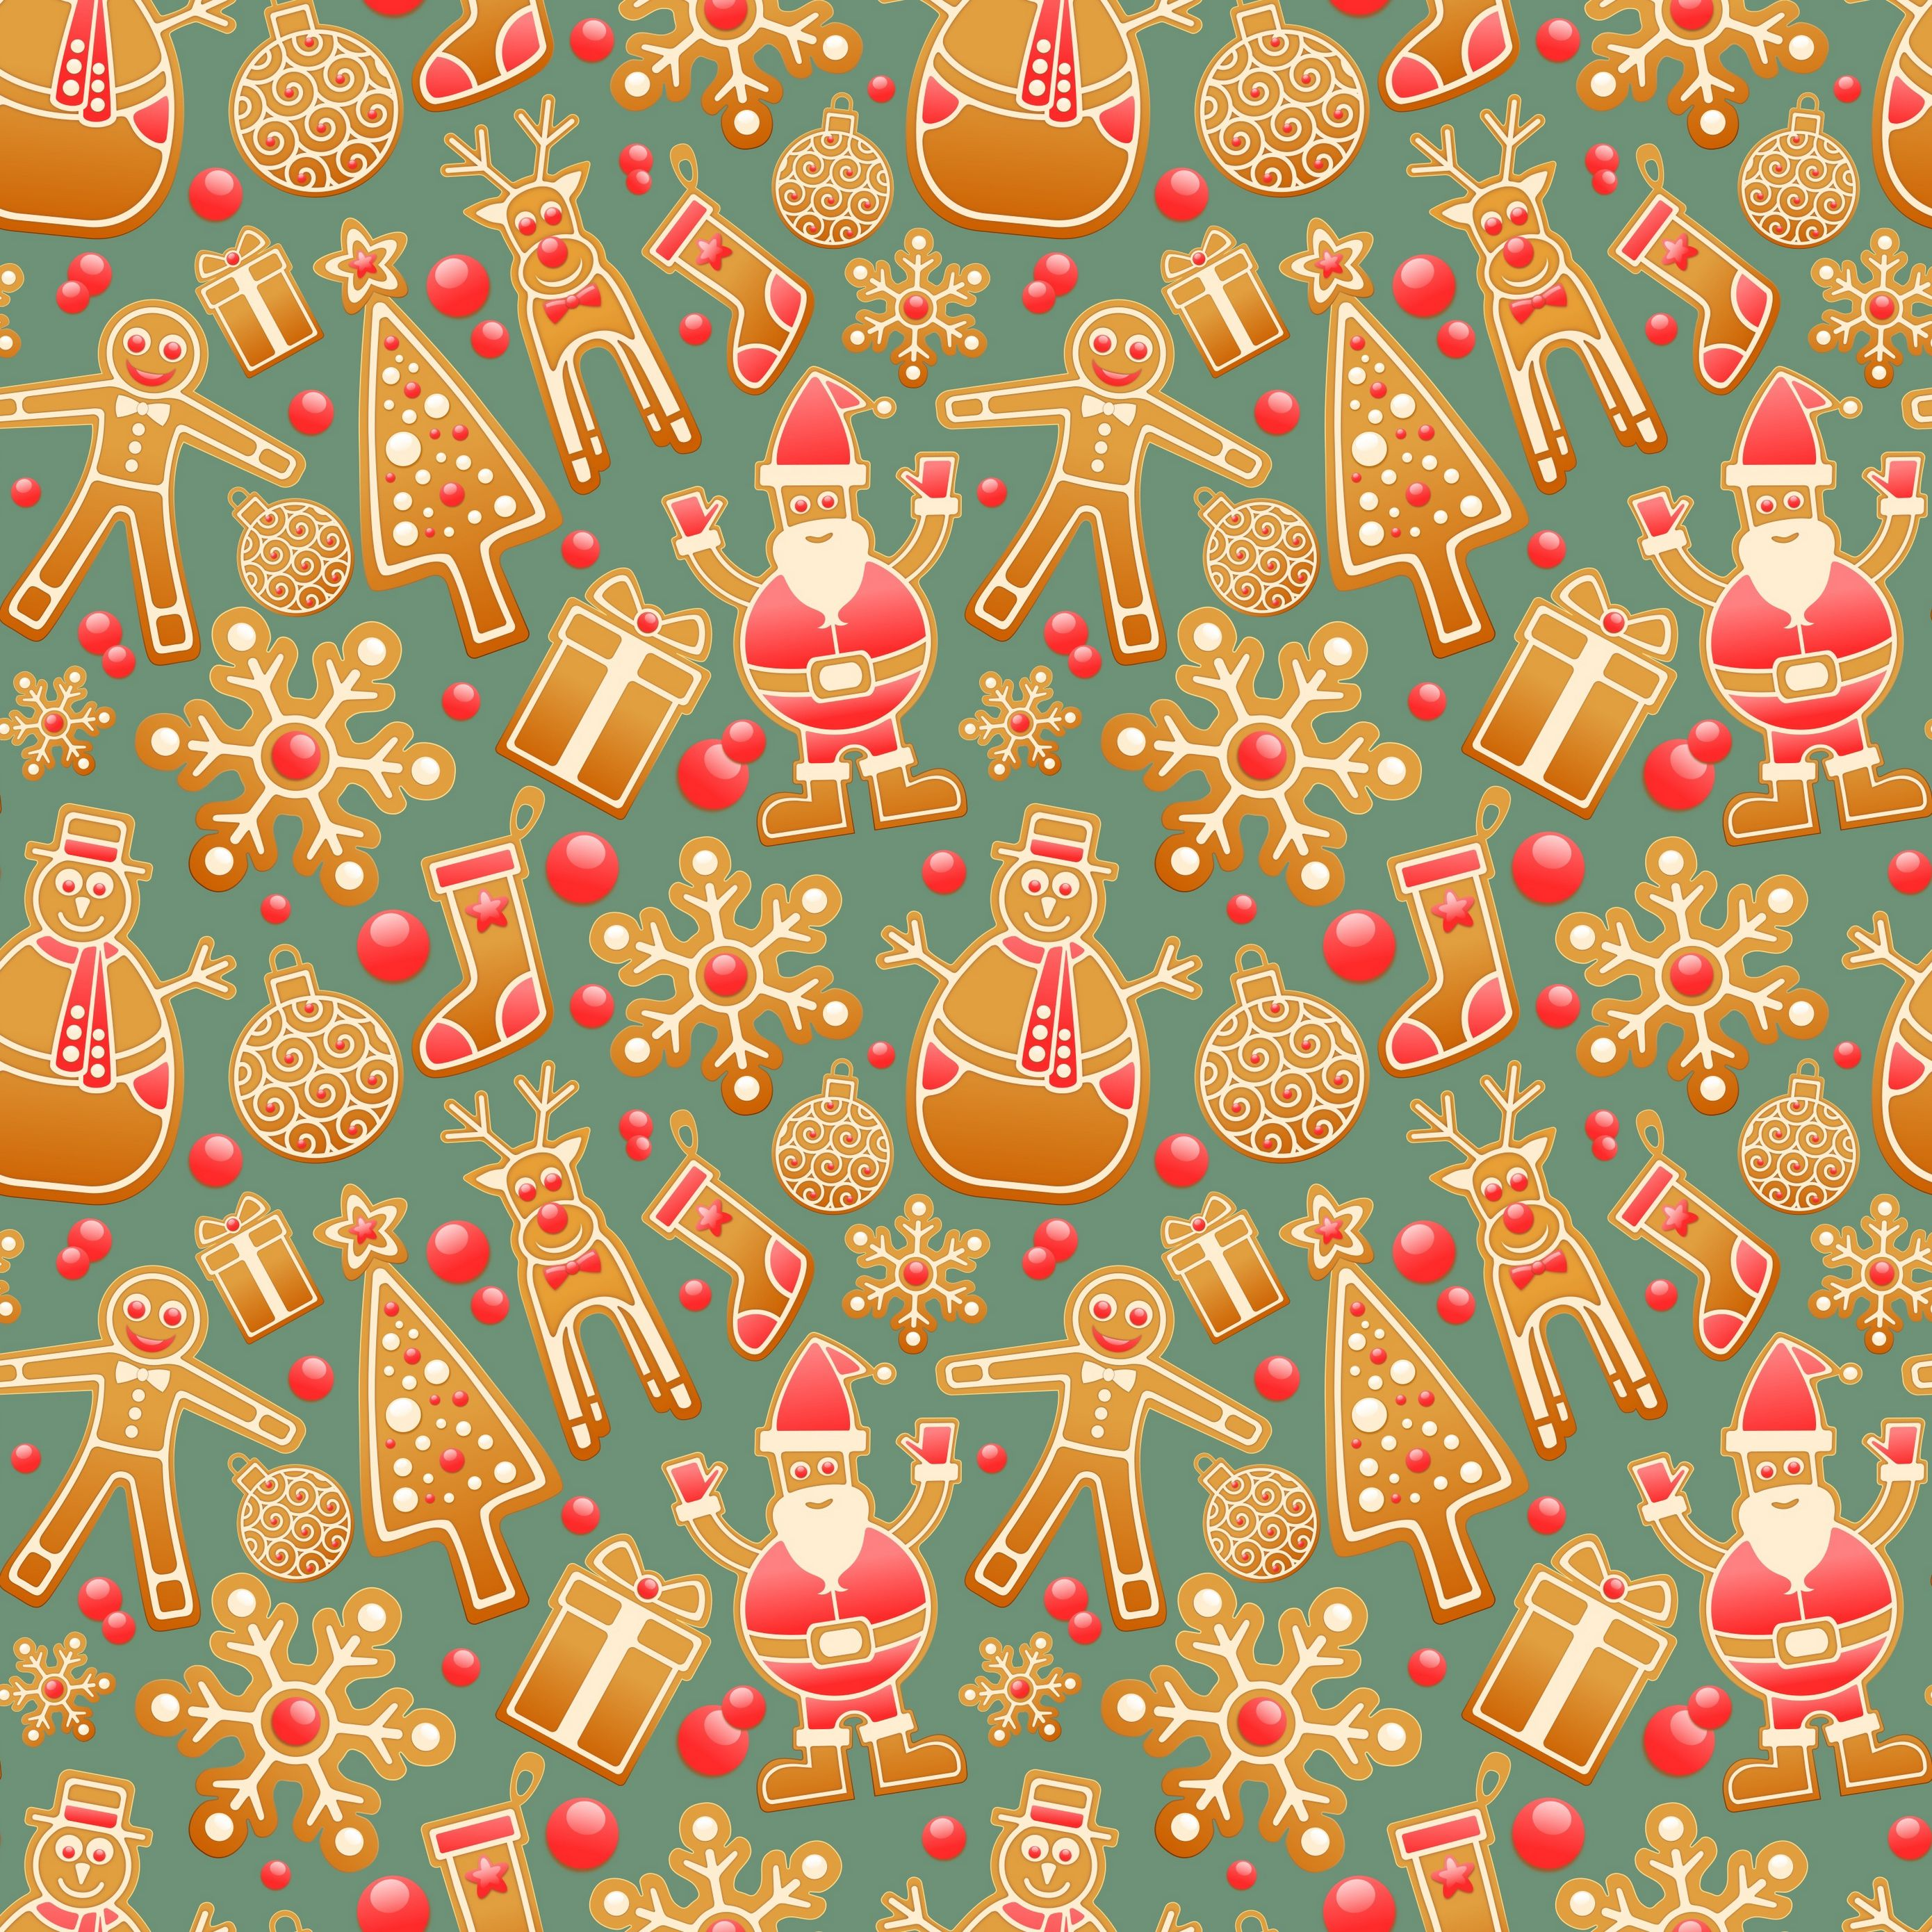 2780x2780 wallpaper christmas new year gingerbread snowman santa claus